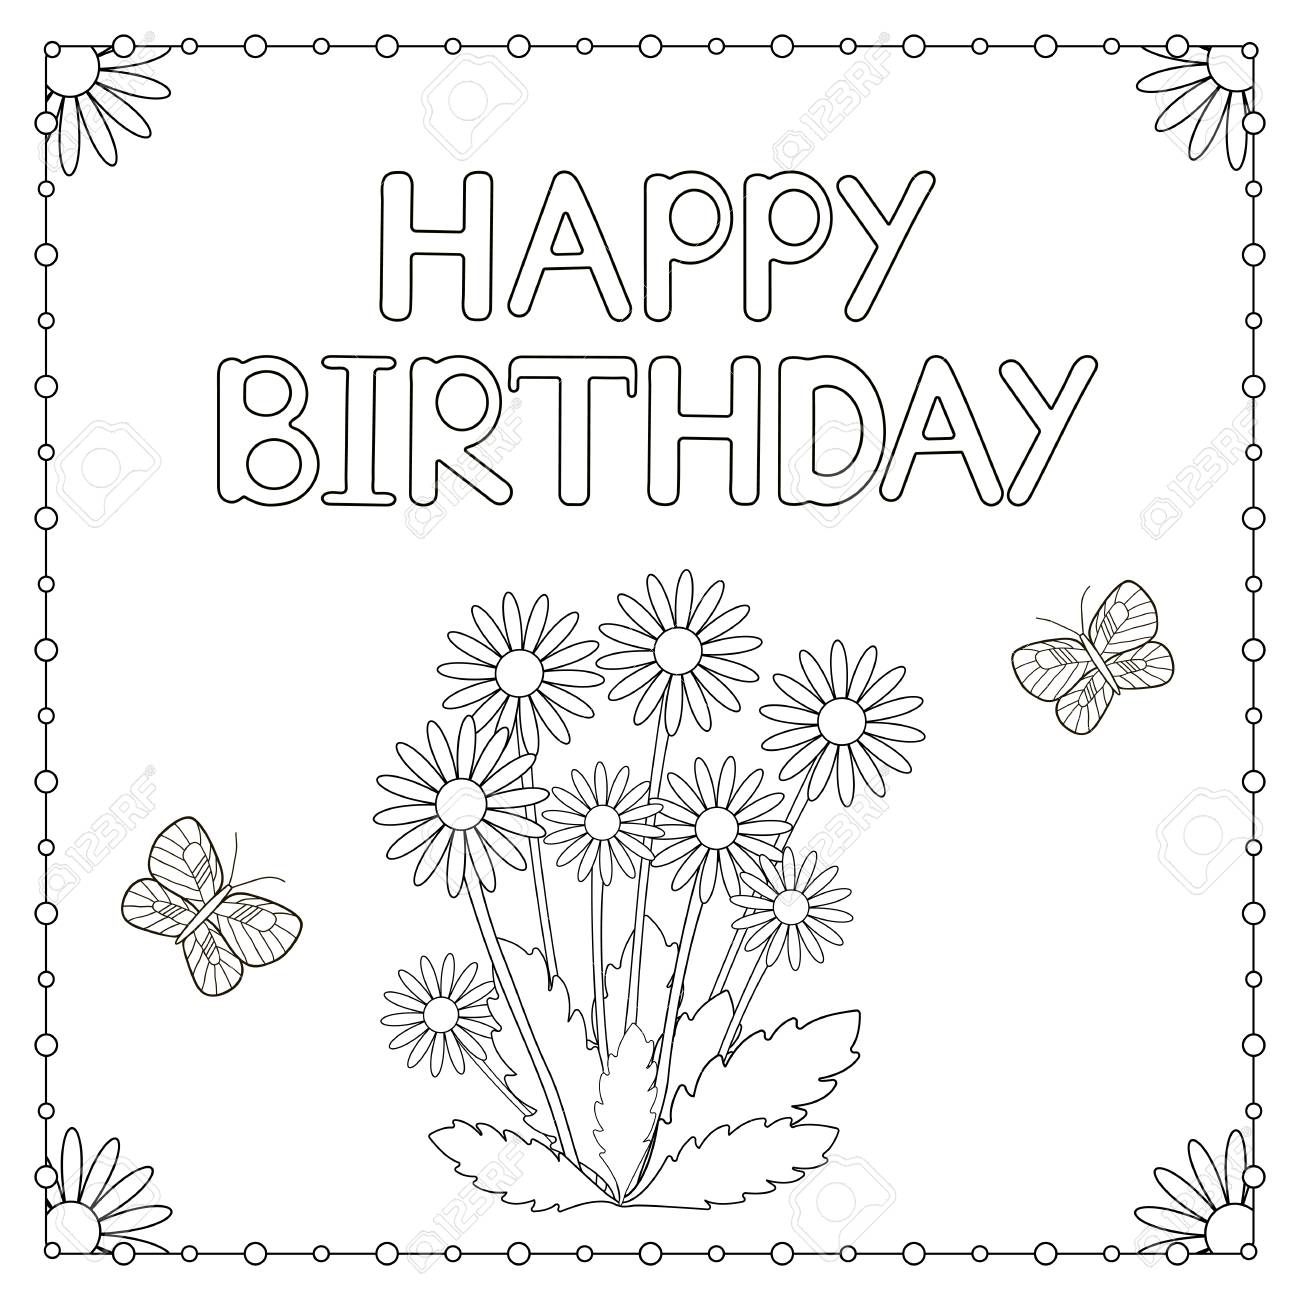 - Happy Birthday Card With Flowers And Butterflies. Coloring Page